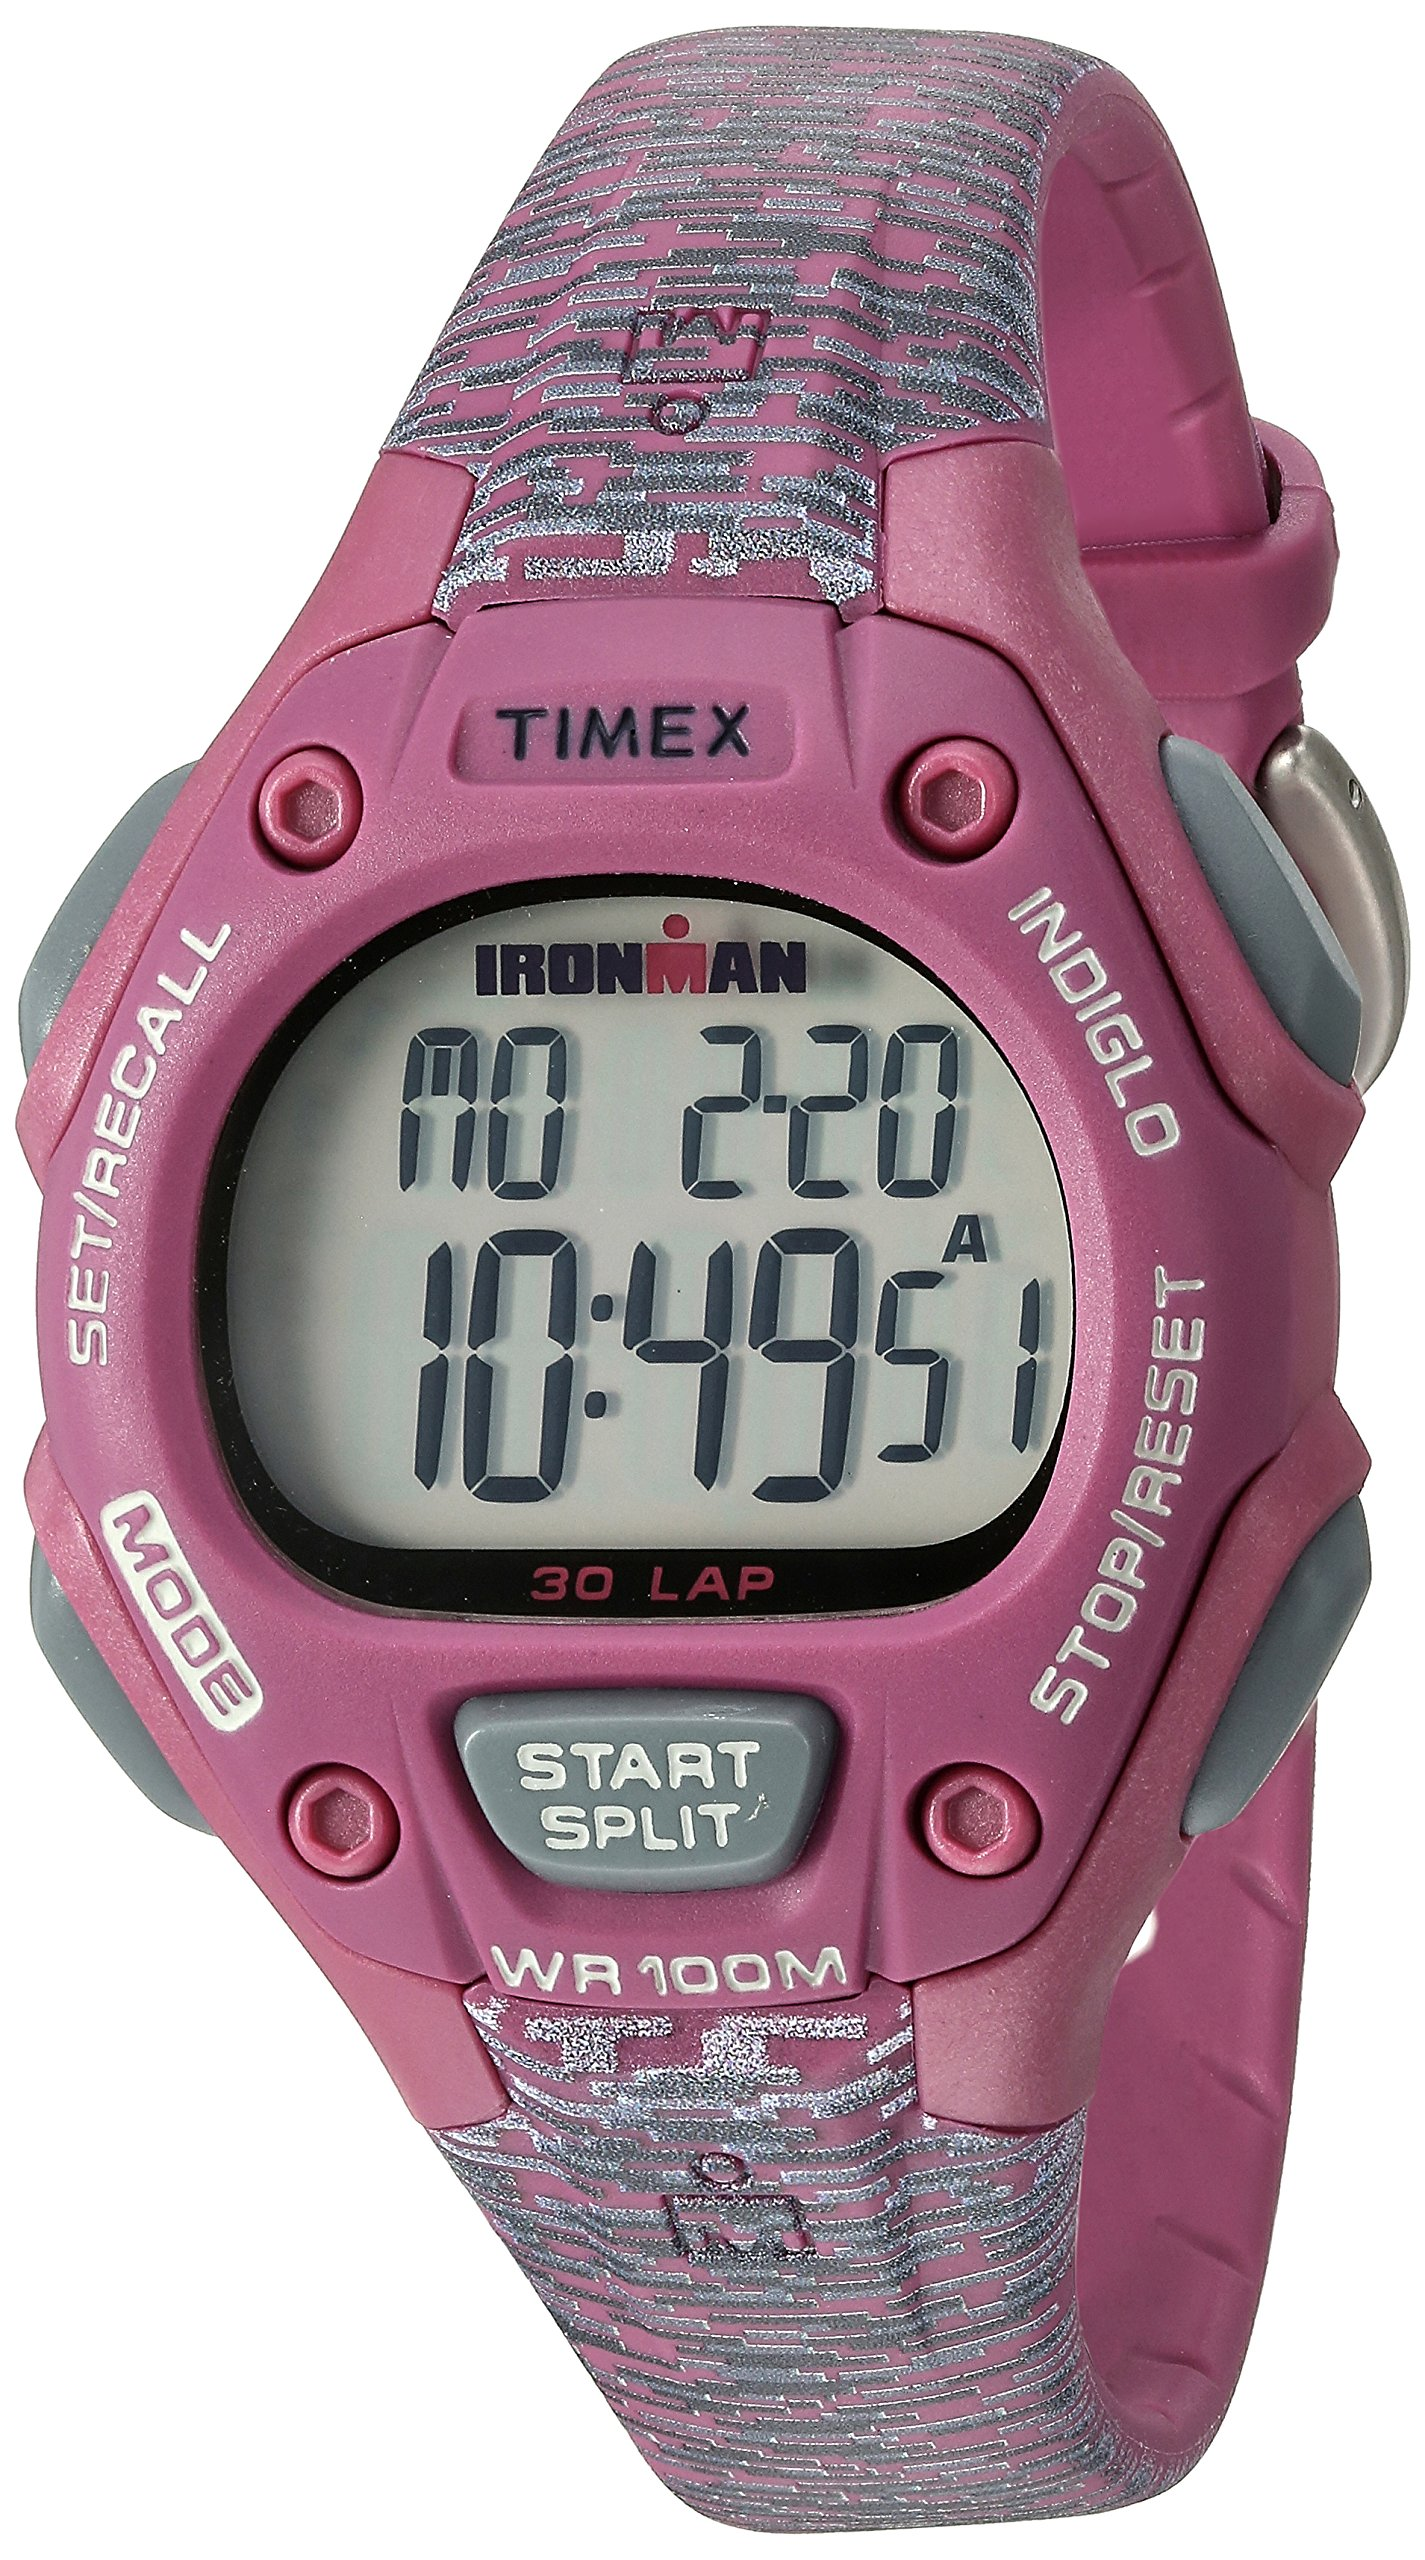 Timex Women's Ironman 30-Lap Digital Quartz Mid-Size Watch, Pink/Gray Texture - TW5M076009J by Timex